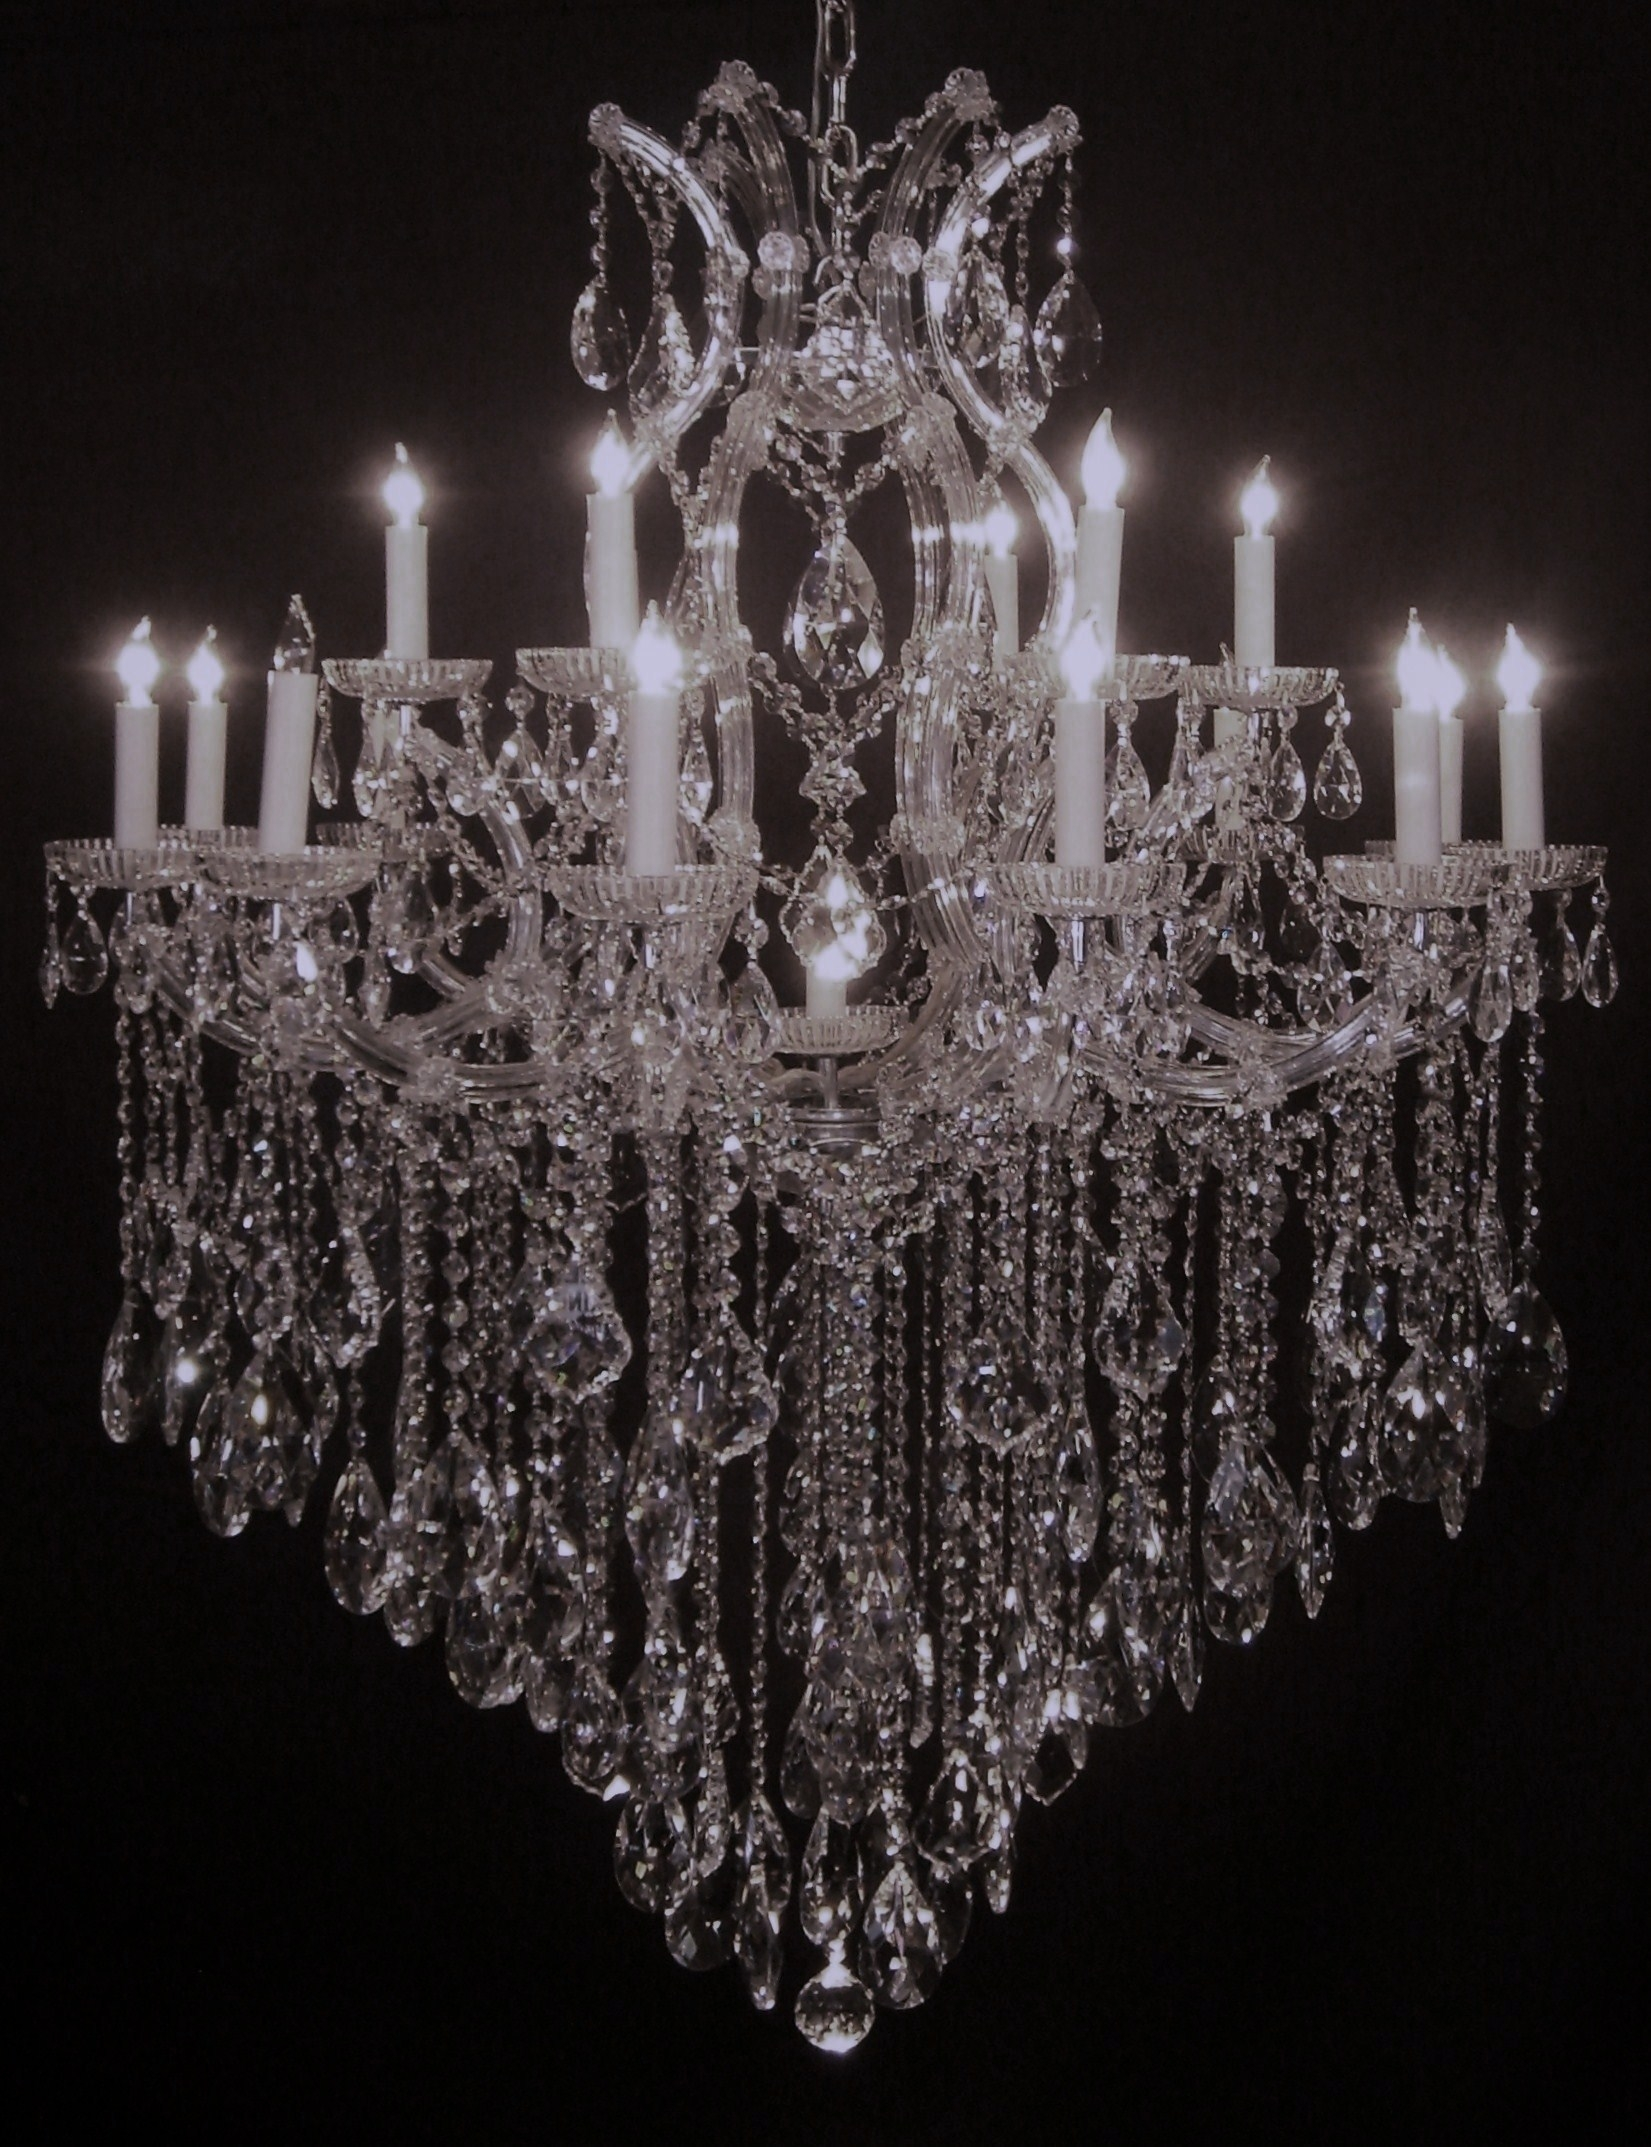 Chandelier Stunning Big Crystalandelier Picture Ideas Stock Photo Pertaining To Big Crystal Chandelier (#6 of 12)